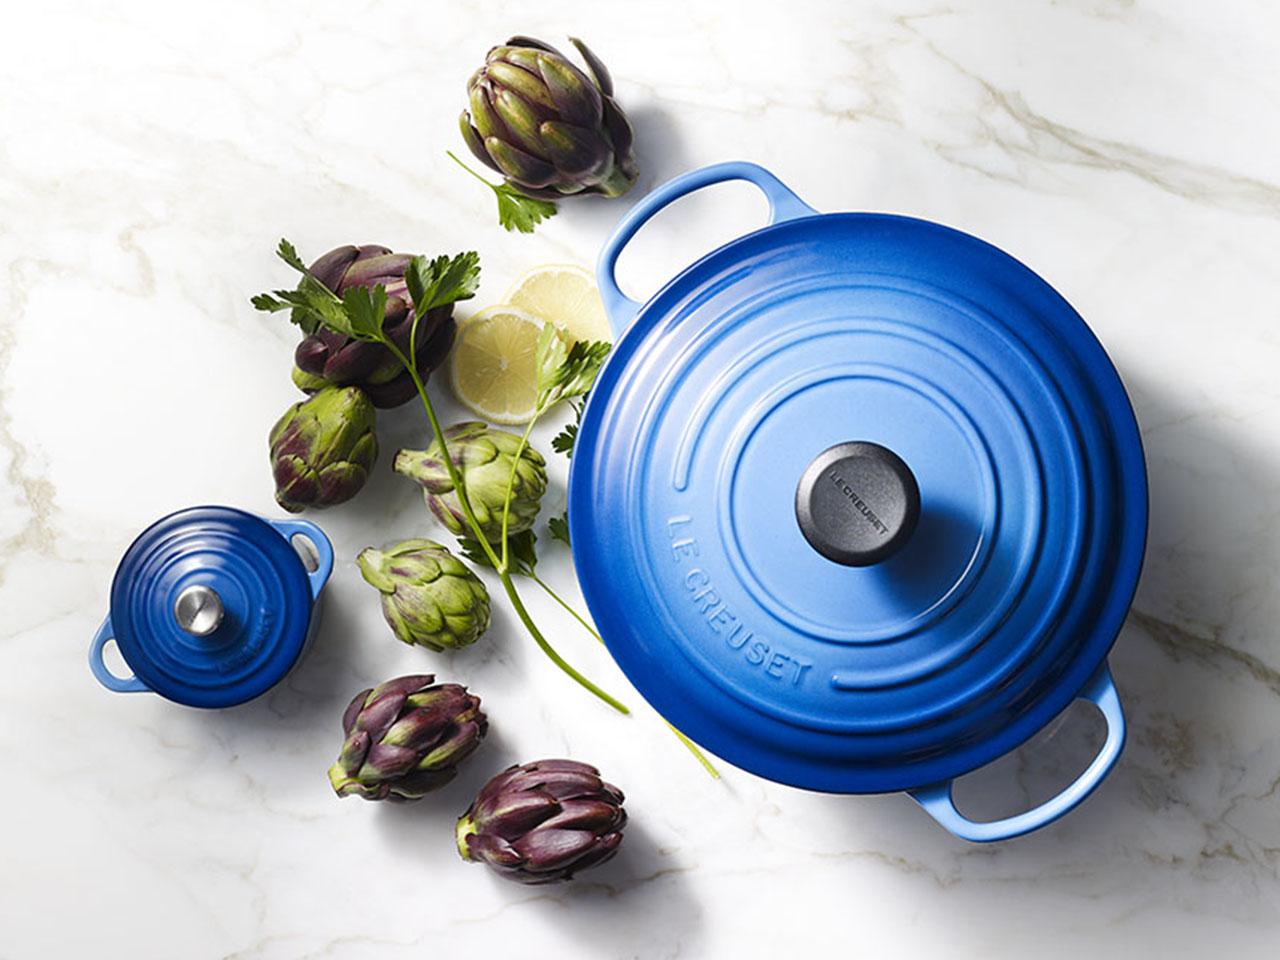 Le Creuset Colours now include this Blueberry Dutch Oven